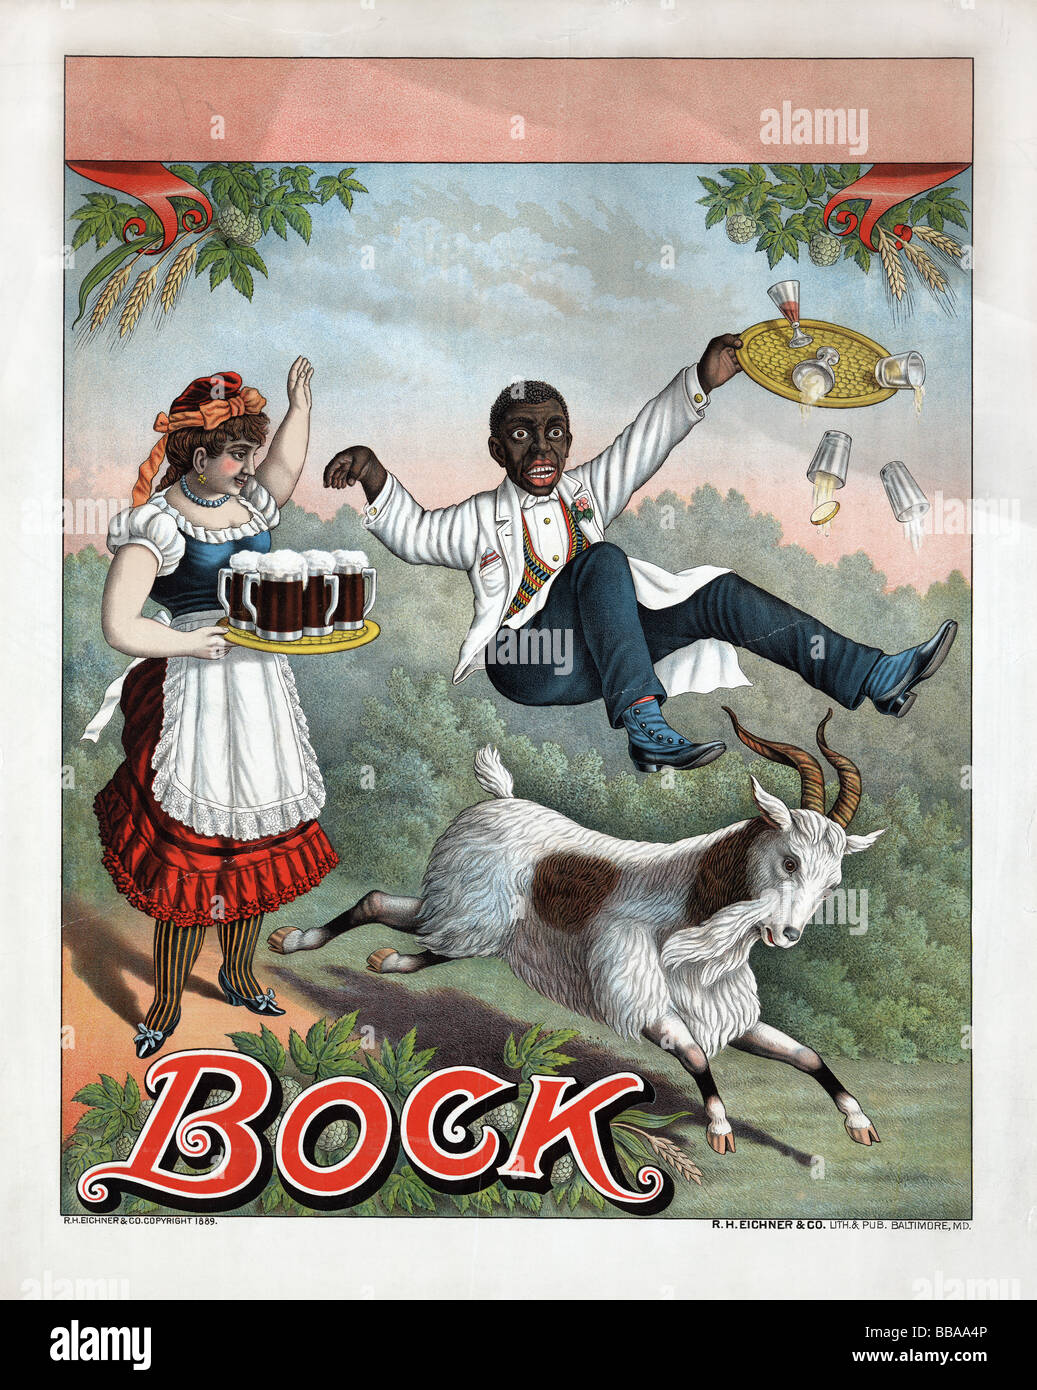 Late nineteenth century (circa 1889) lithograph poster advertising Bock Beer. - Stock Image